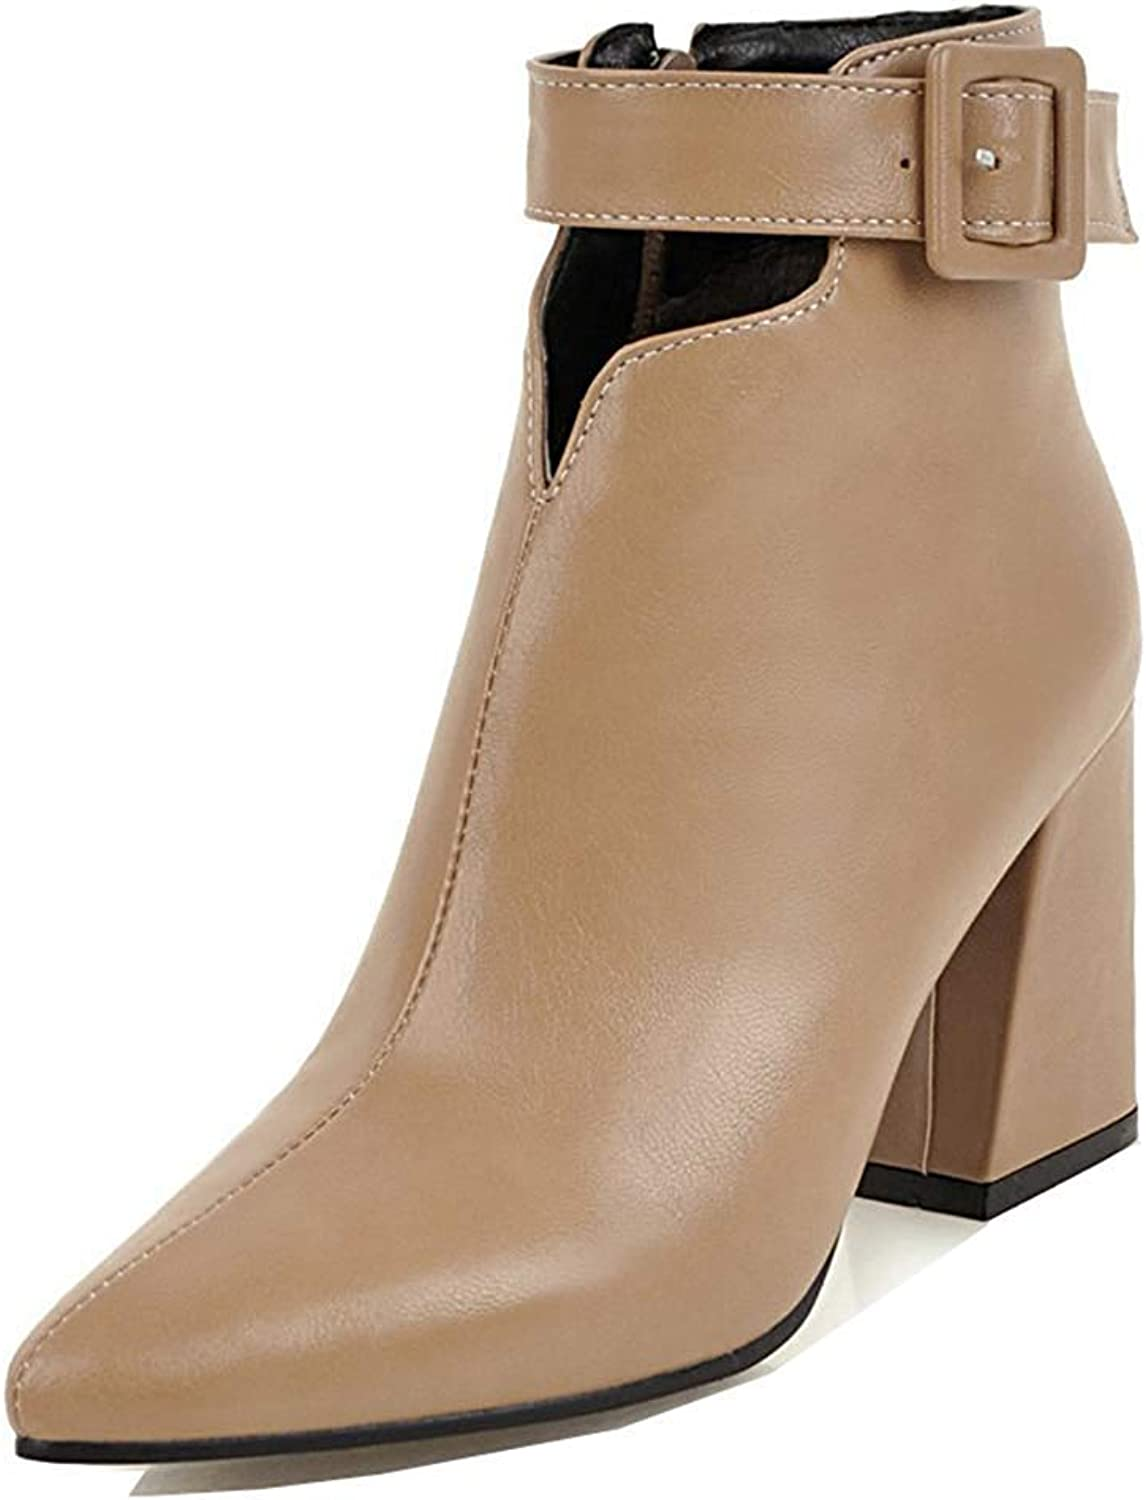 Unm Women's Pointed Toe Short Boots with Zipper - Buckle Strap Inside Zip Up Dressy - Block High Heel Ankle Booties